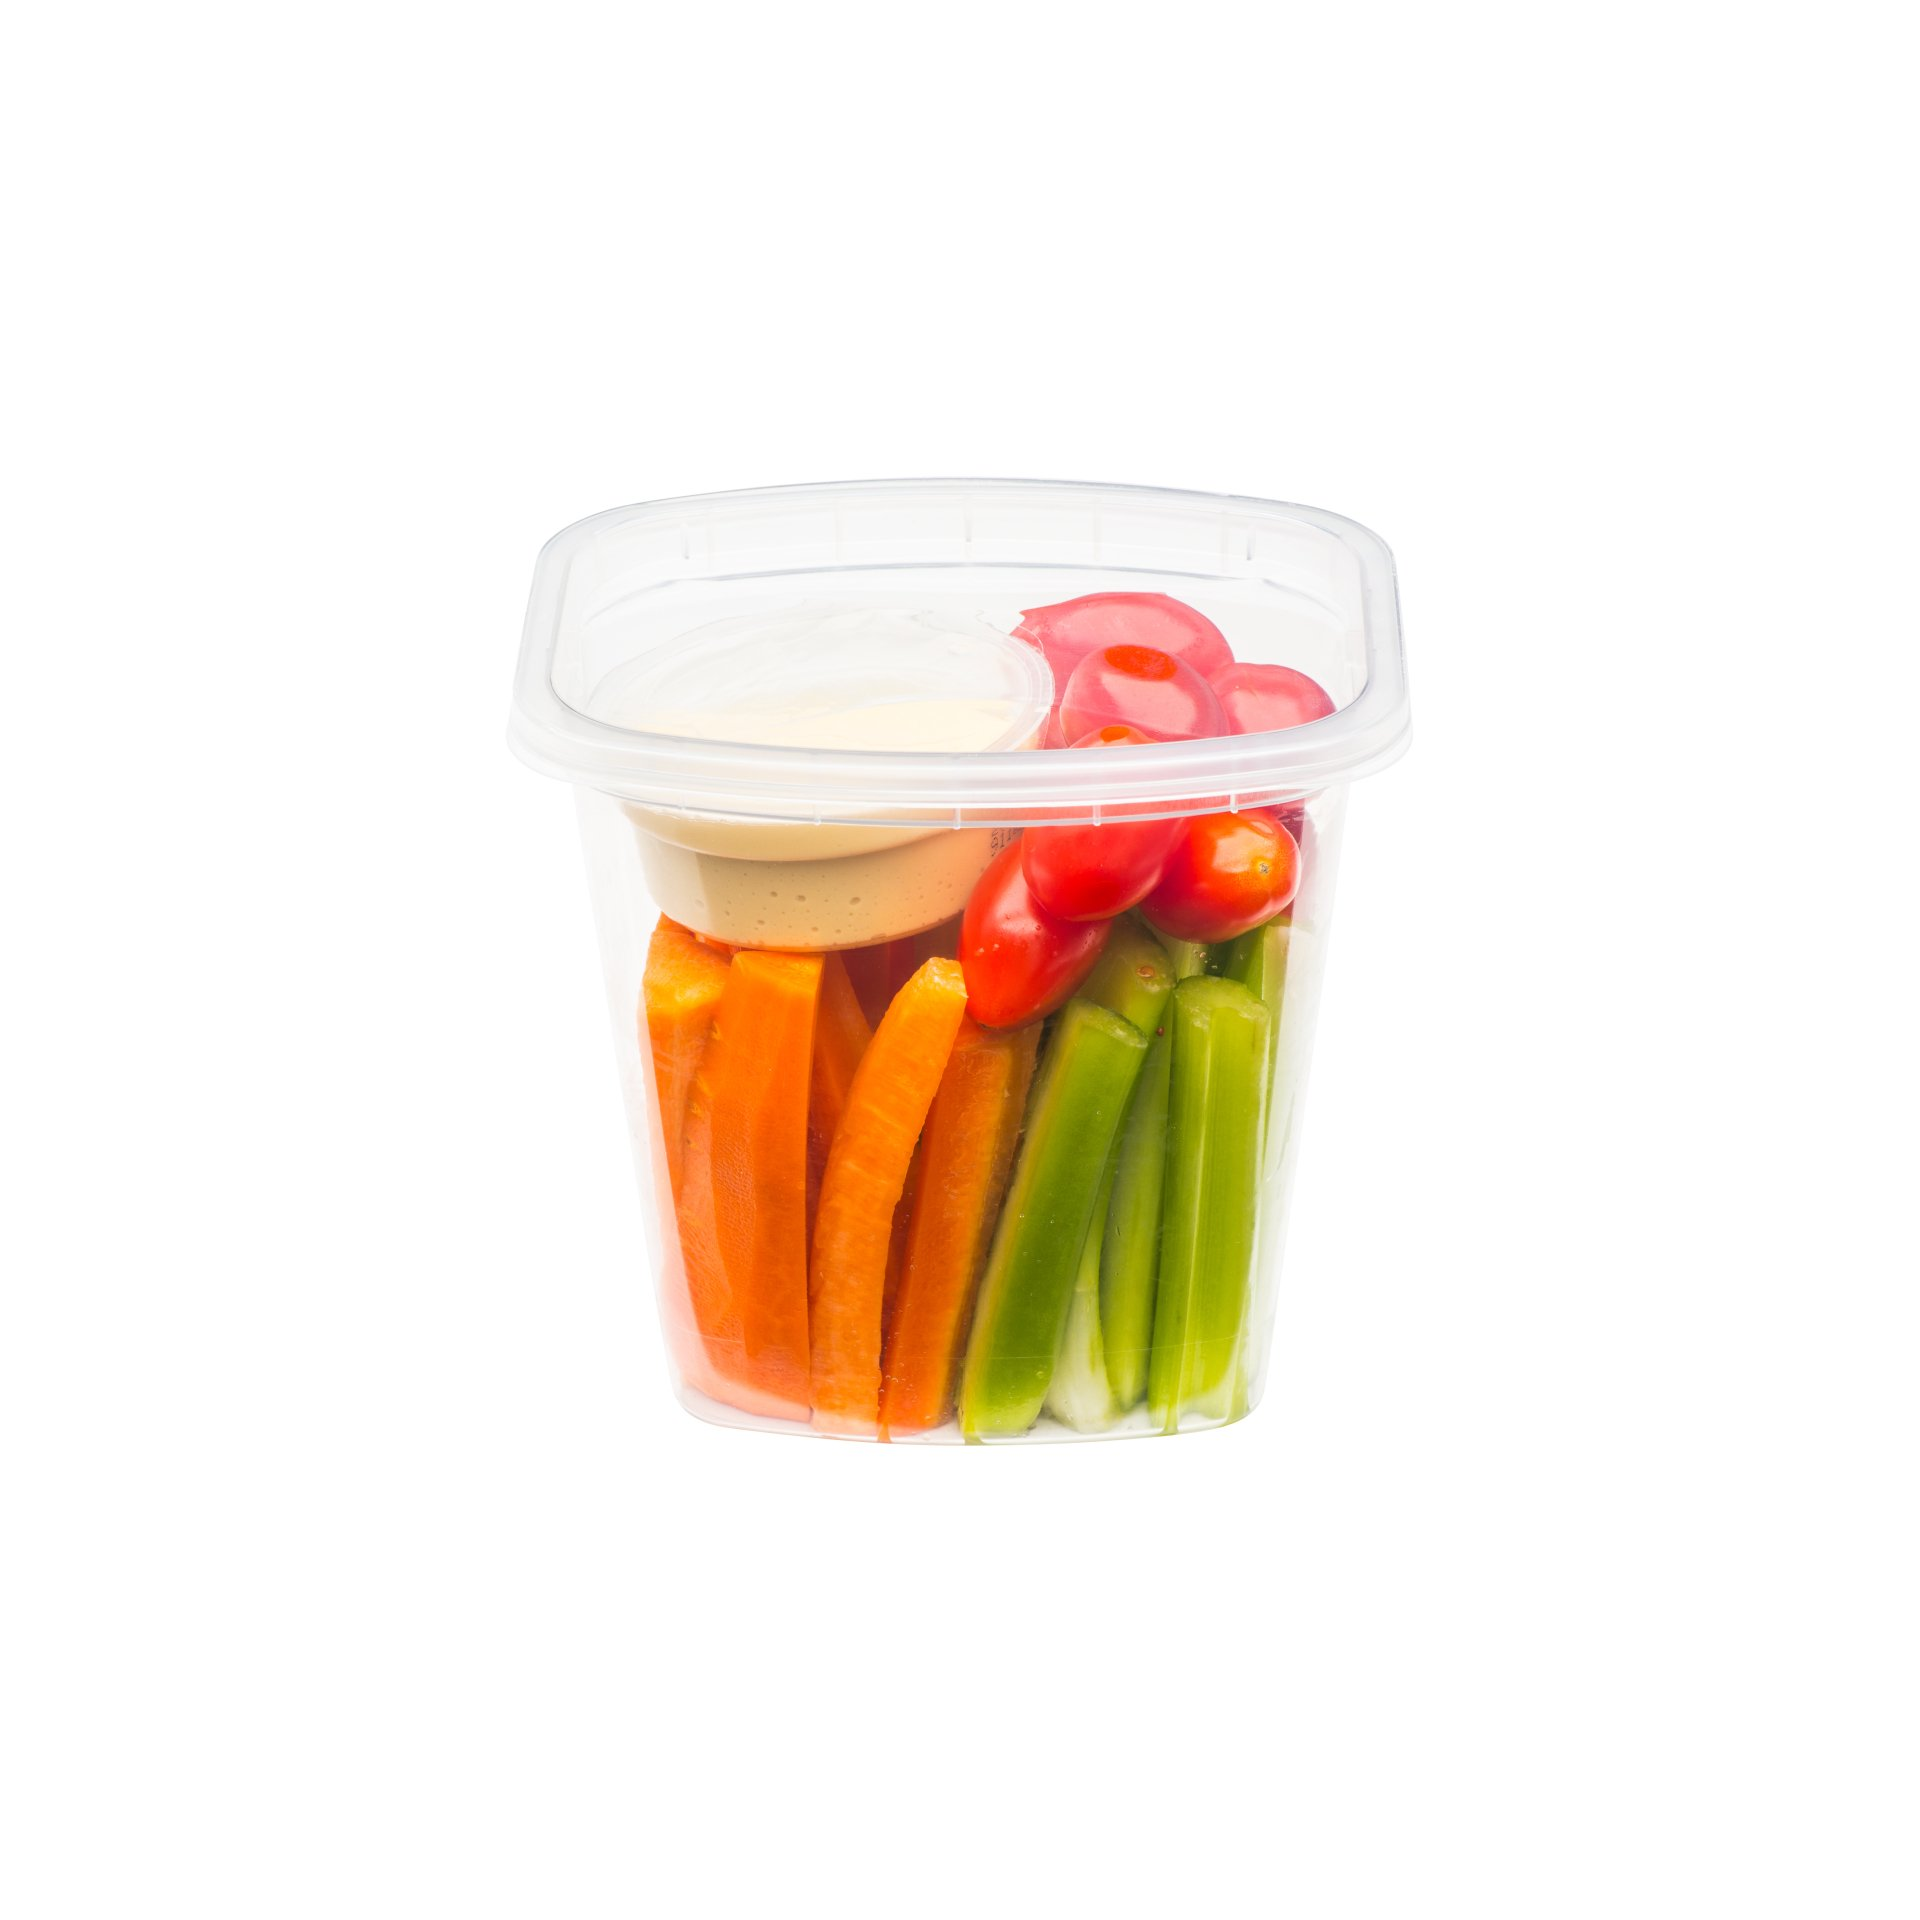 Food Containers For Grocery Stores Amp Retailers Cube